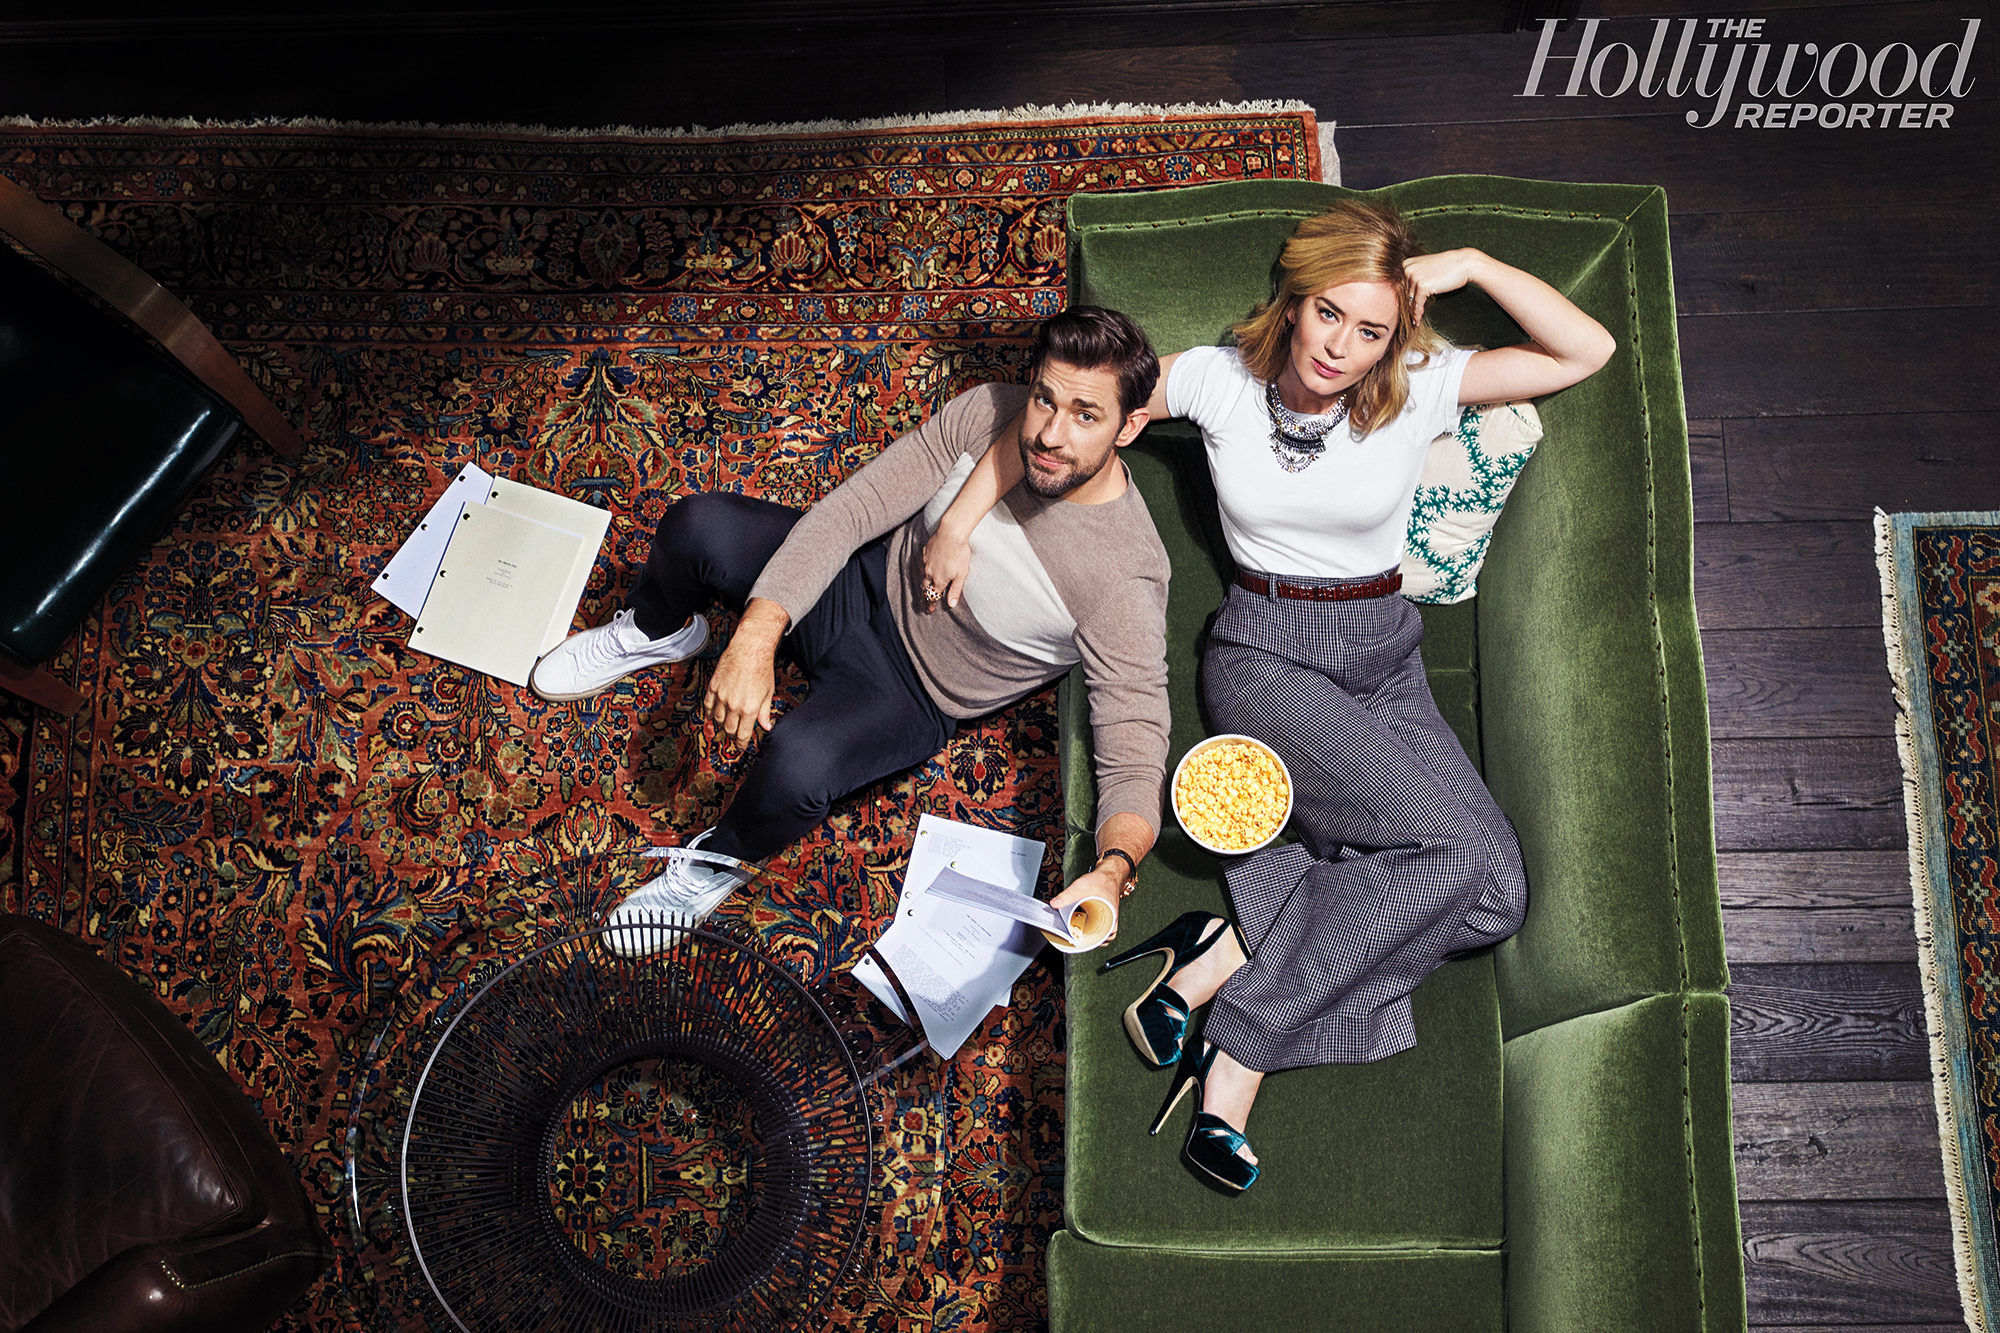 """John Krasinski Emily Blunt First Date Hollywood Reporter Rulebreakers - """"I didn't want it to be like, 'Oh, how adorable. They're working together,'"""" Blunt recalled of agreeing to work with her spouse on the critically acclaimed thriller. """"It was the only idea that had come our way that seemed bigger than our marriage. The narrative of our marriage was not going to overwhelm this movie and this amazing opportunity for him as a director, as a filmmaker, as a writer. I knew this was a big swing for him."""""""